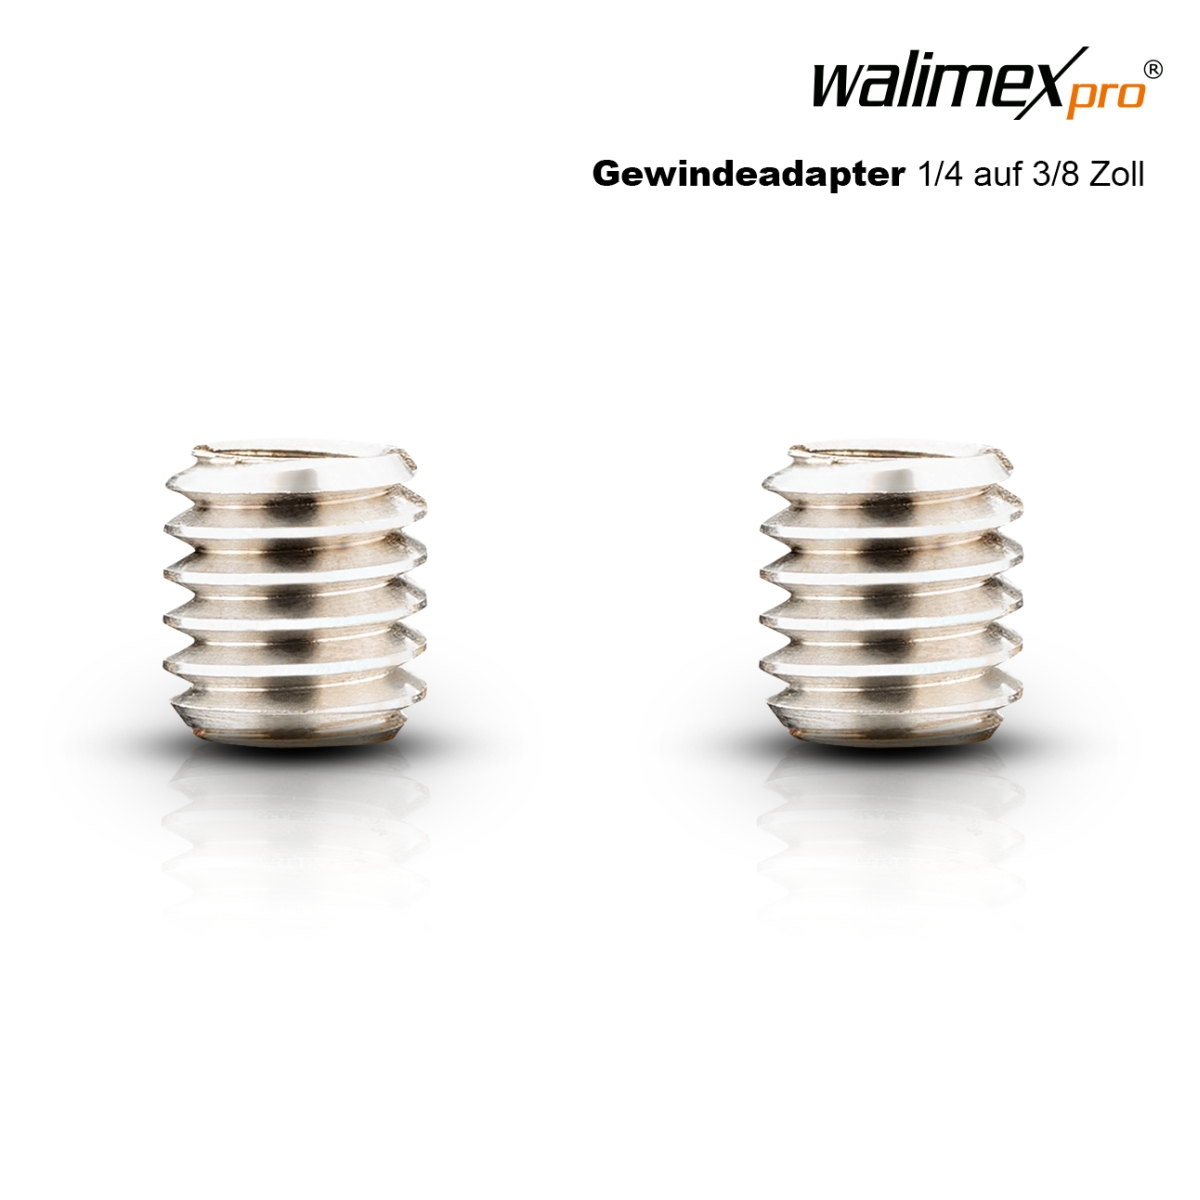 Walimex pro Adapter 1/4 inch to 3/8 inch, 2x